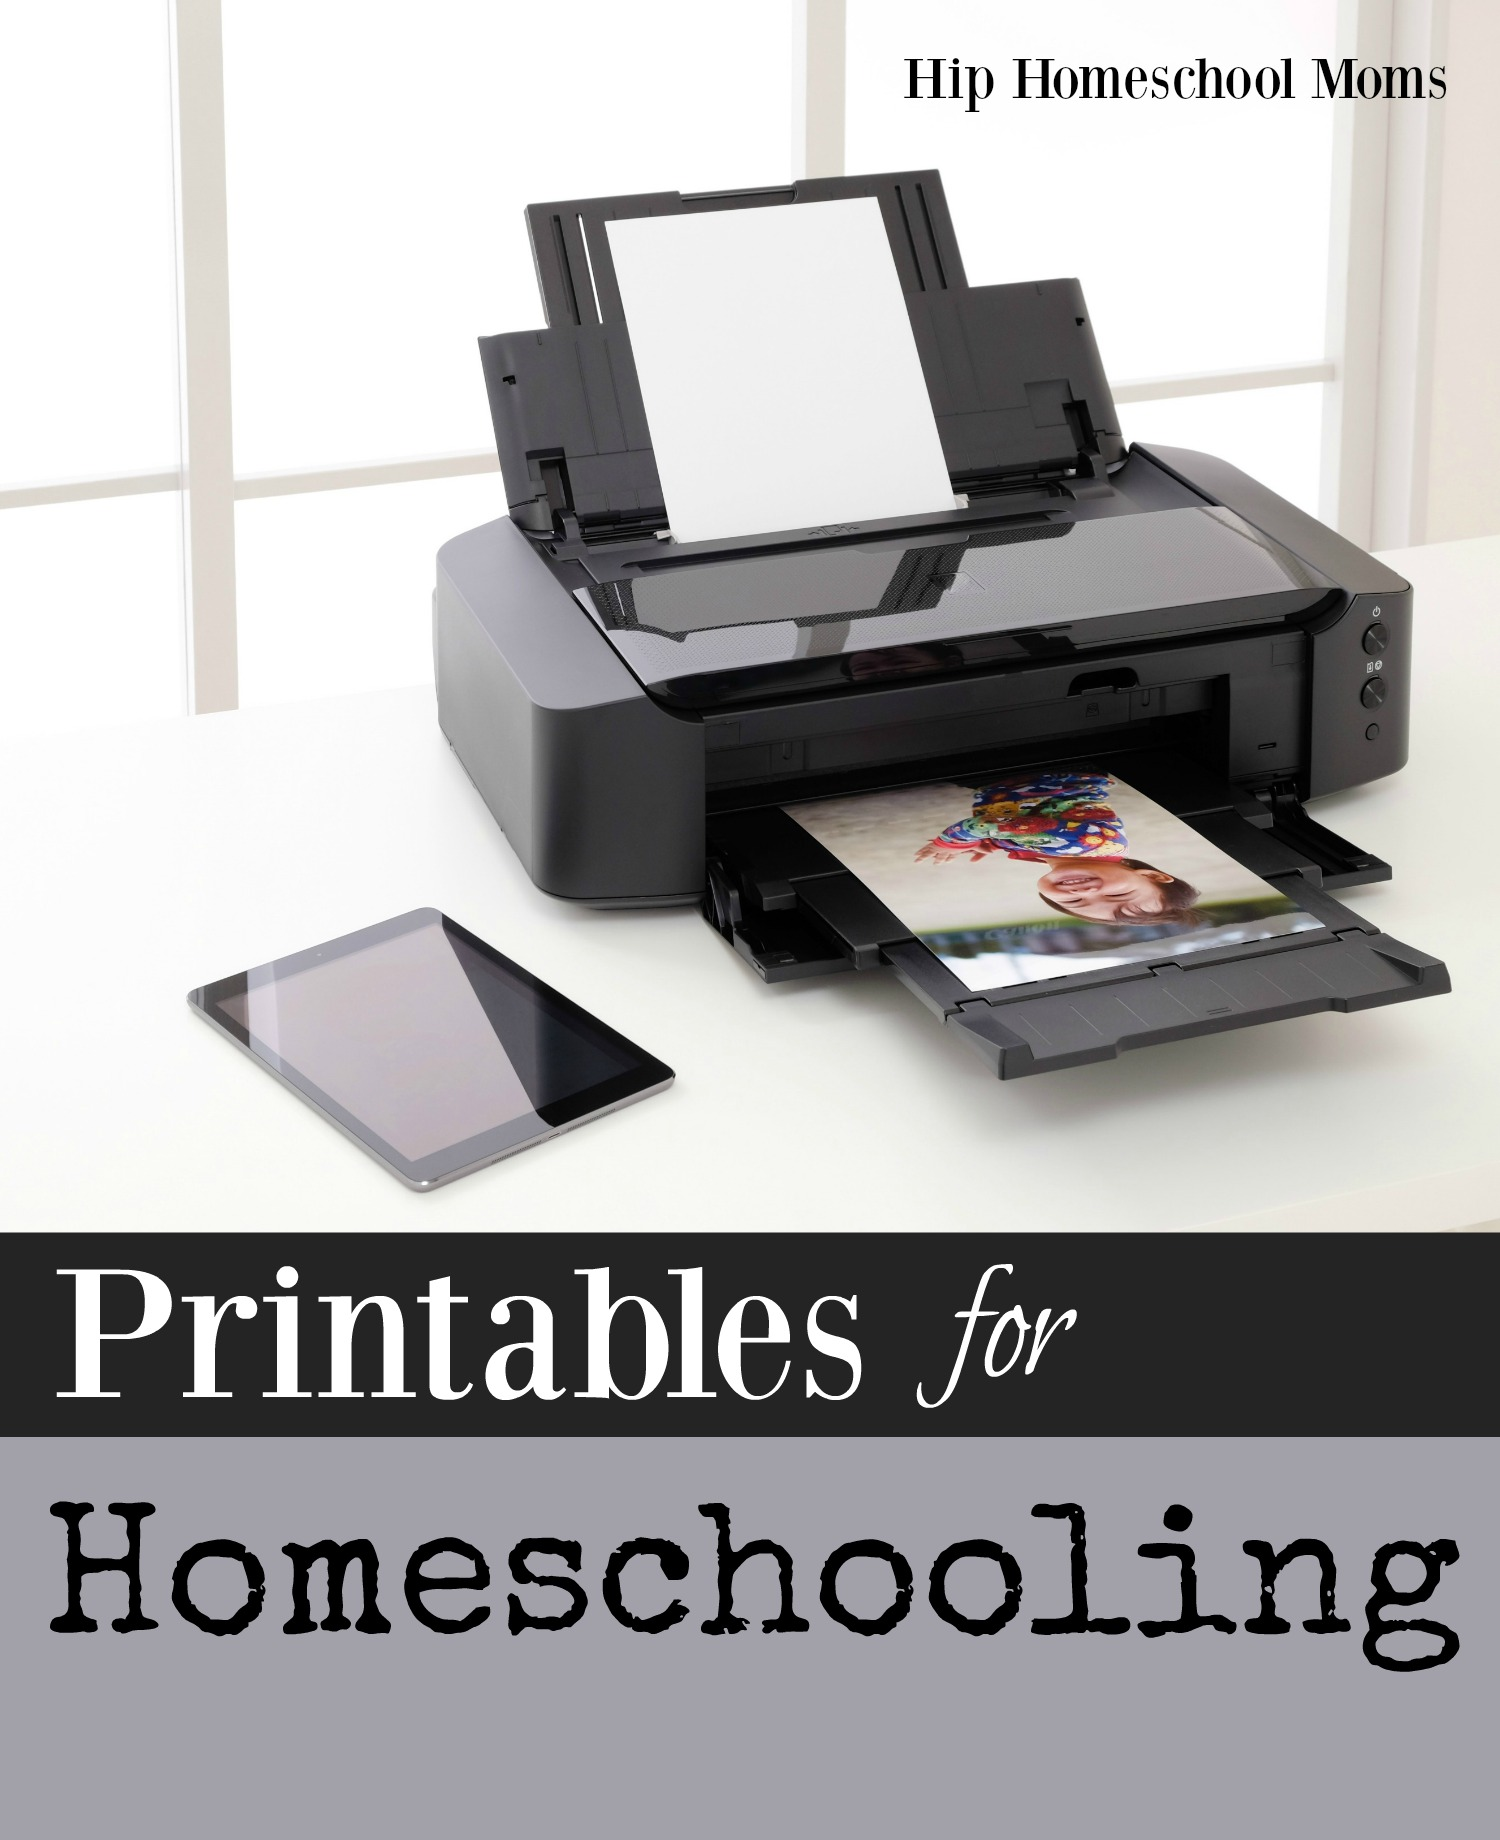 Printables for Homeschooling